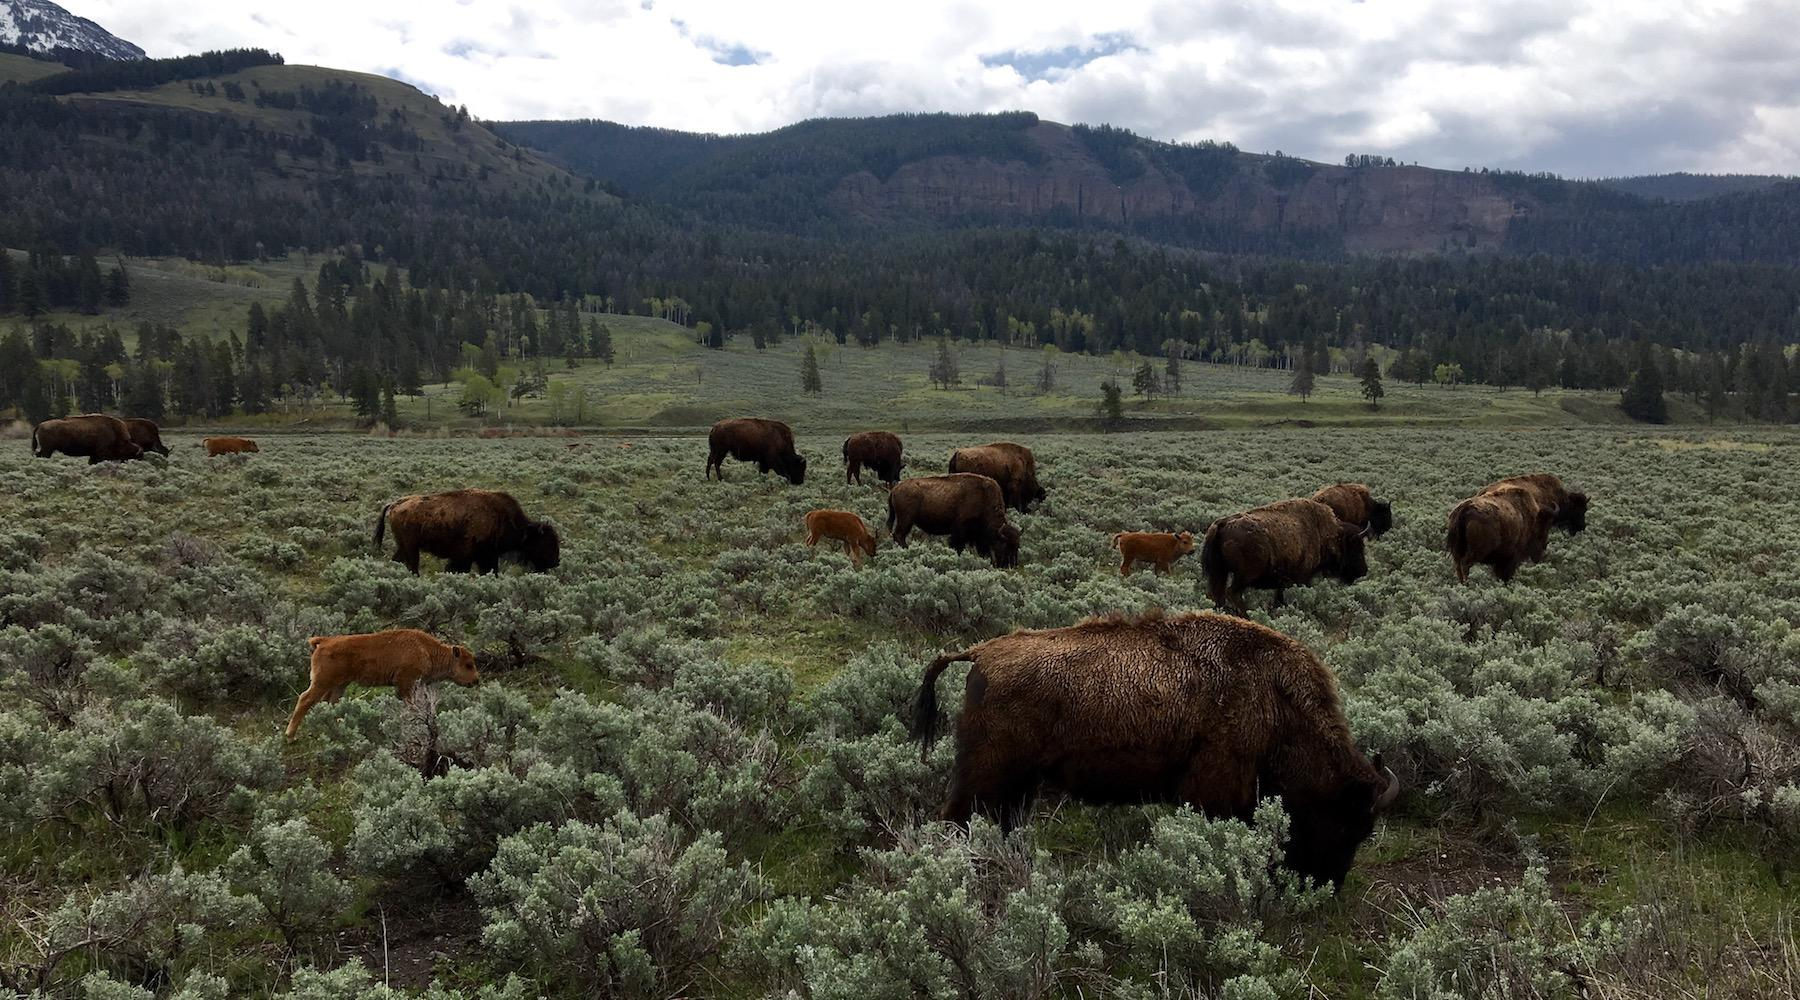 Bison graze in Yellowstone National Park